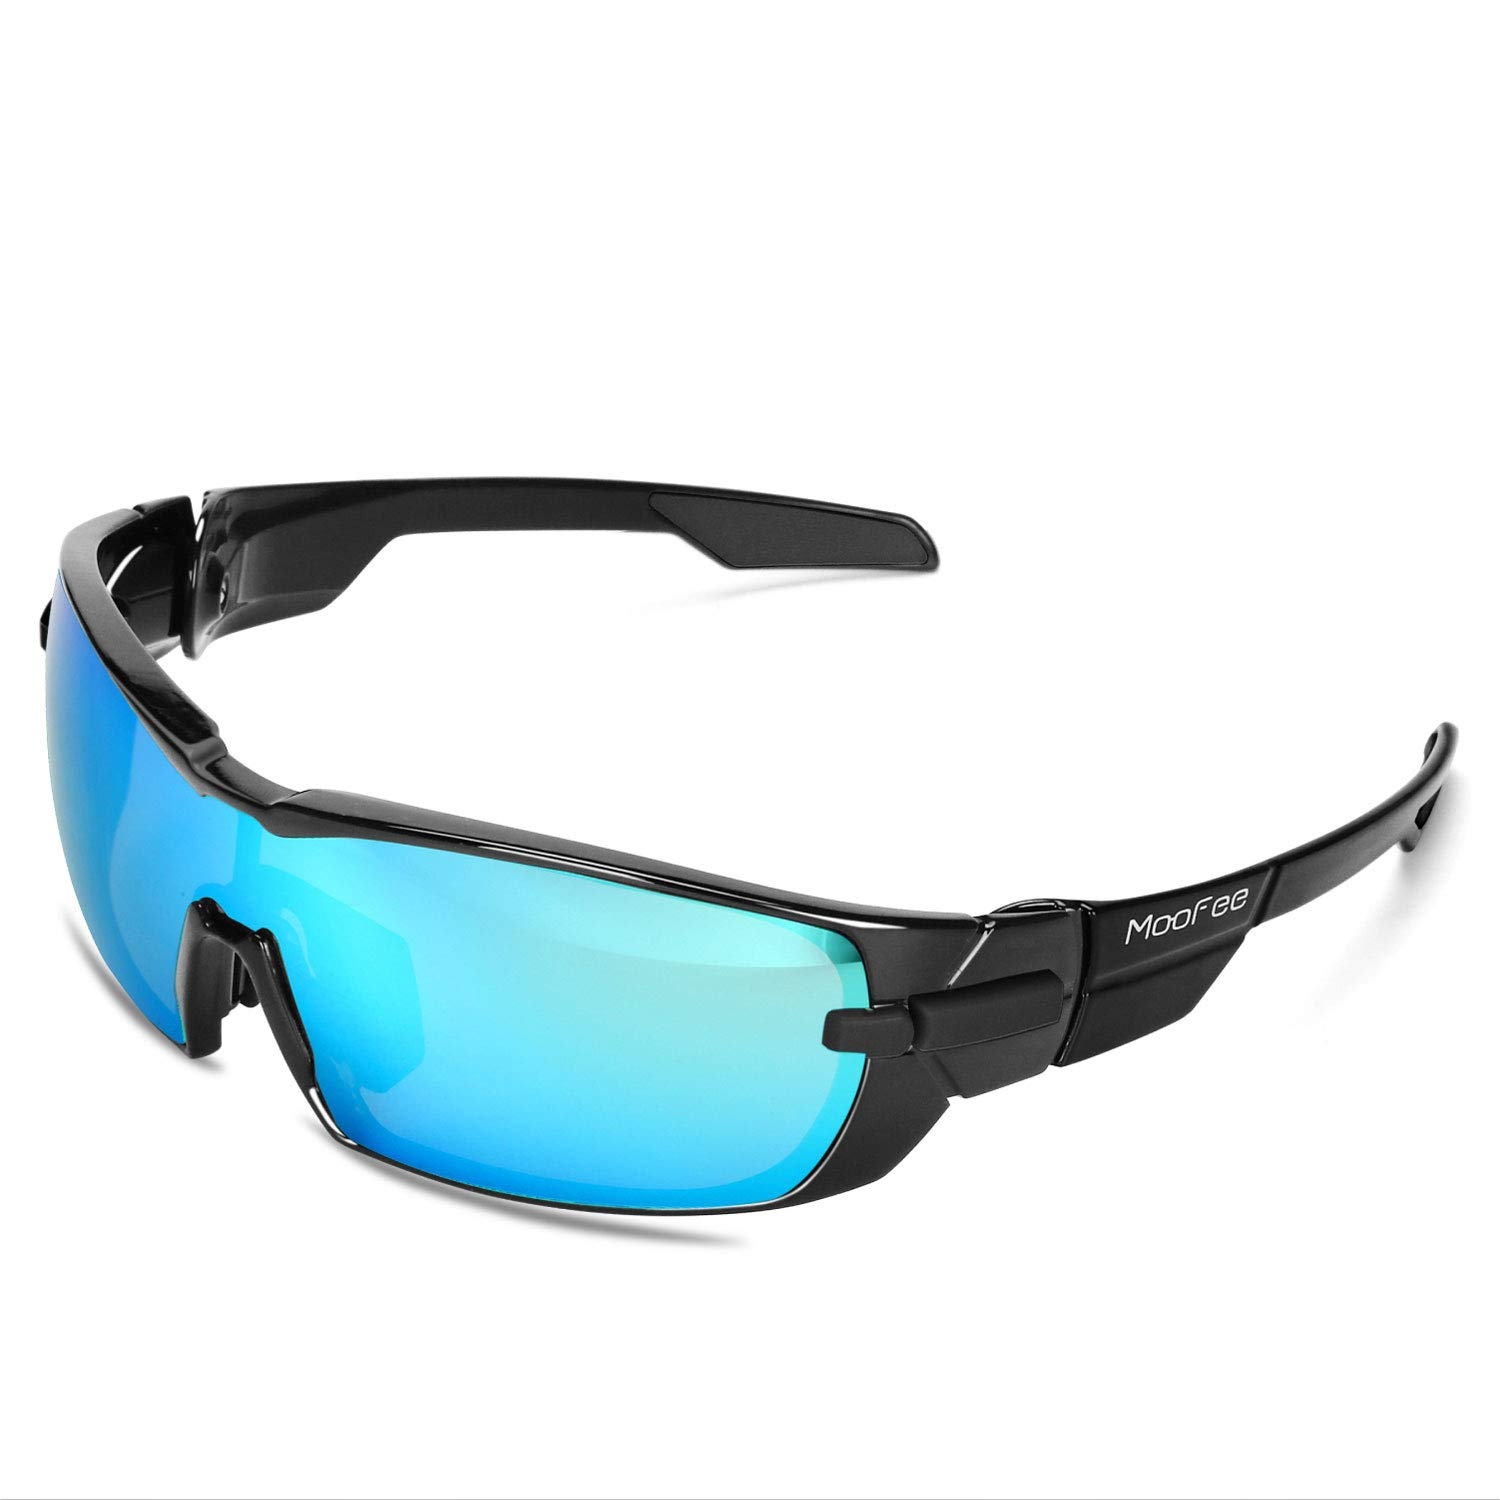 d9cd98abcb24 Amazon.com  Moofee Polarized Sports Sunglasses with Rotatable Legs and 3  interchangeable Lenses Outdoor Glasses for Men Women TR90 Unbreakable UV  Protection ...